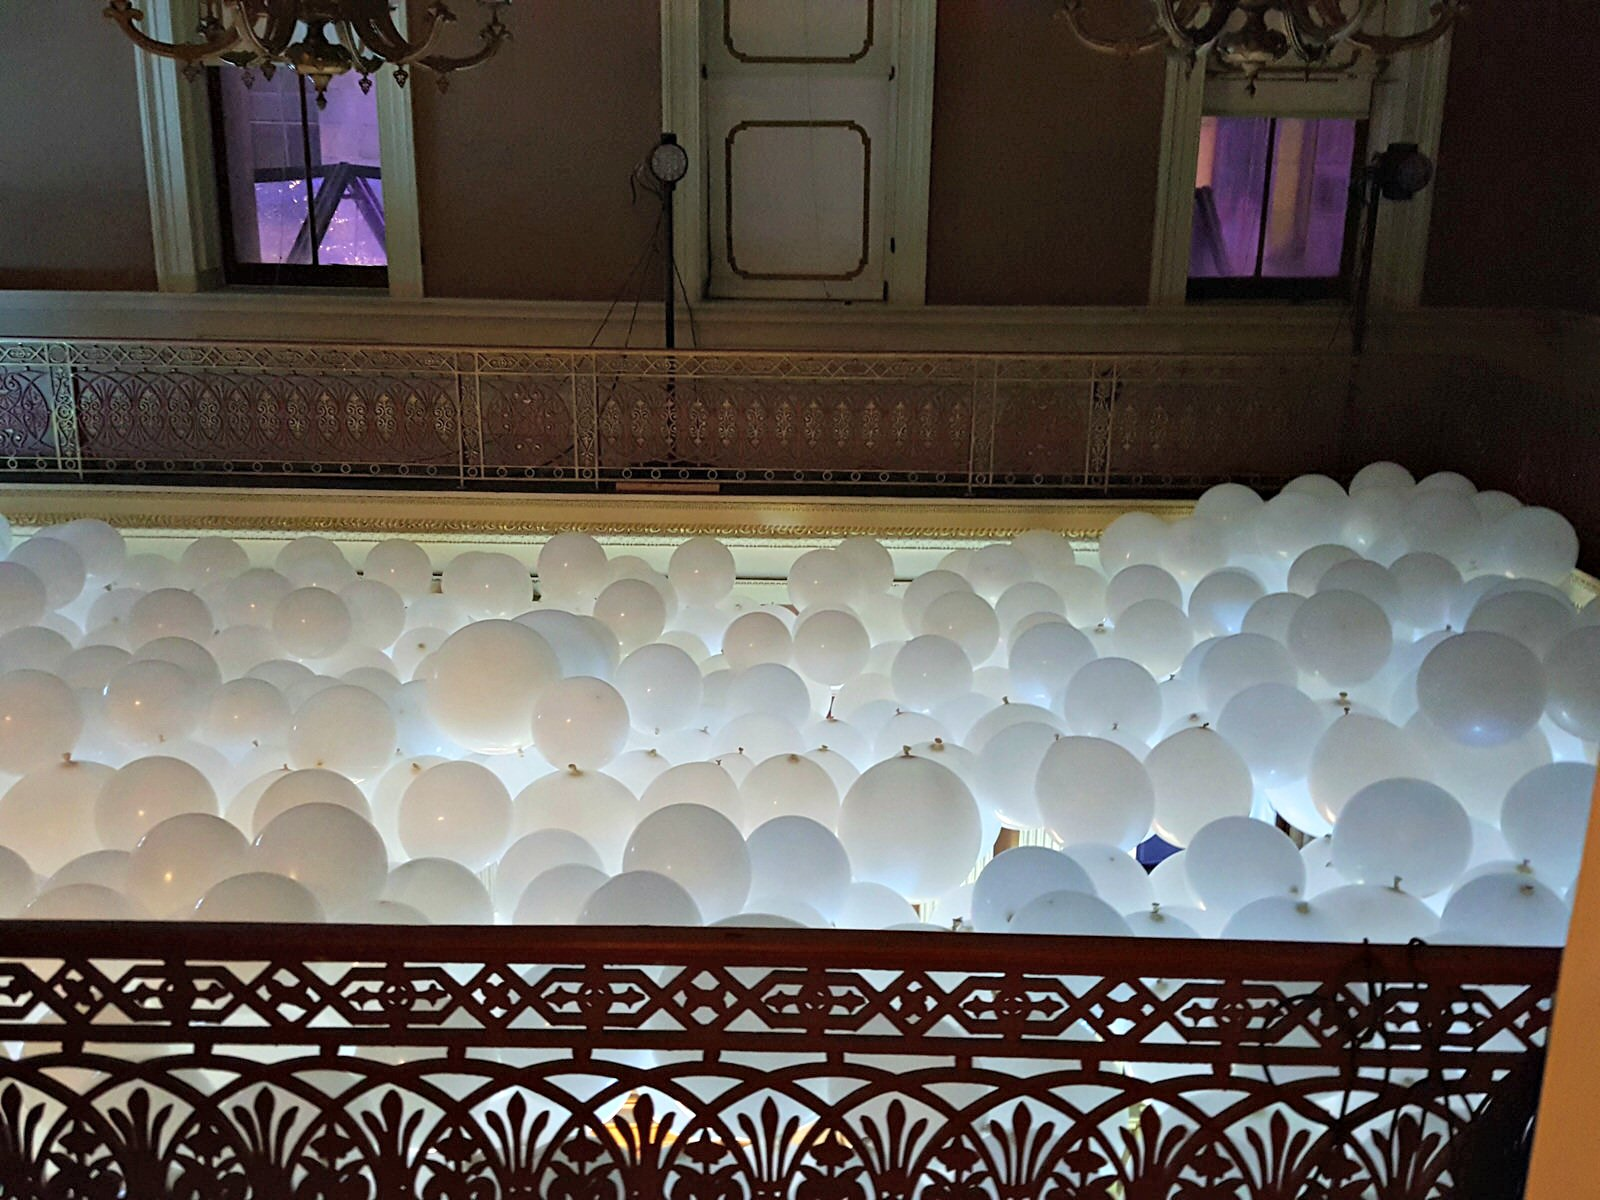 Balloon Ceiling from top view Google Balloon Cloud Promotion SF Mint.jpg